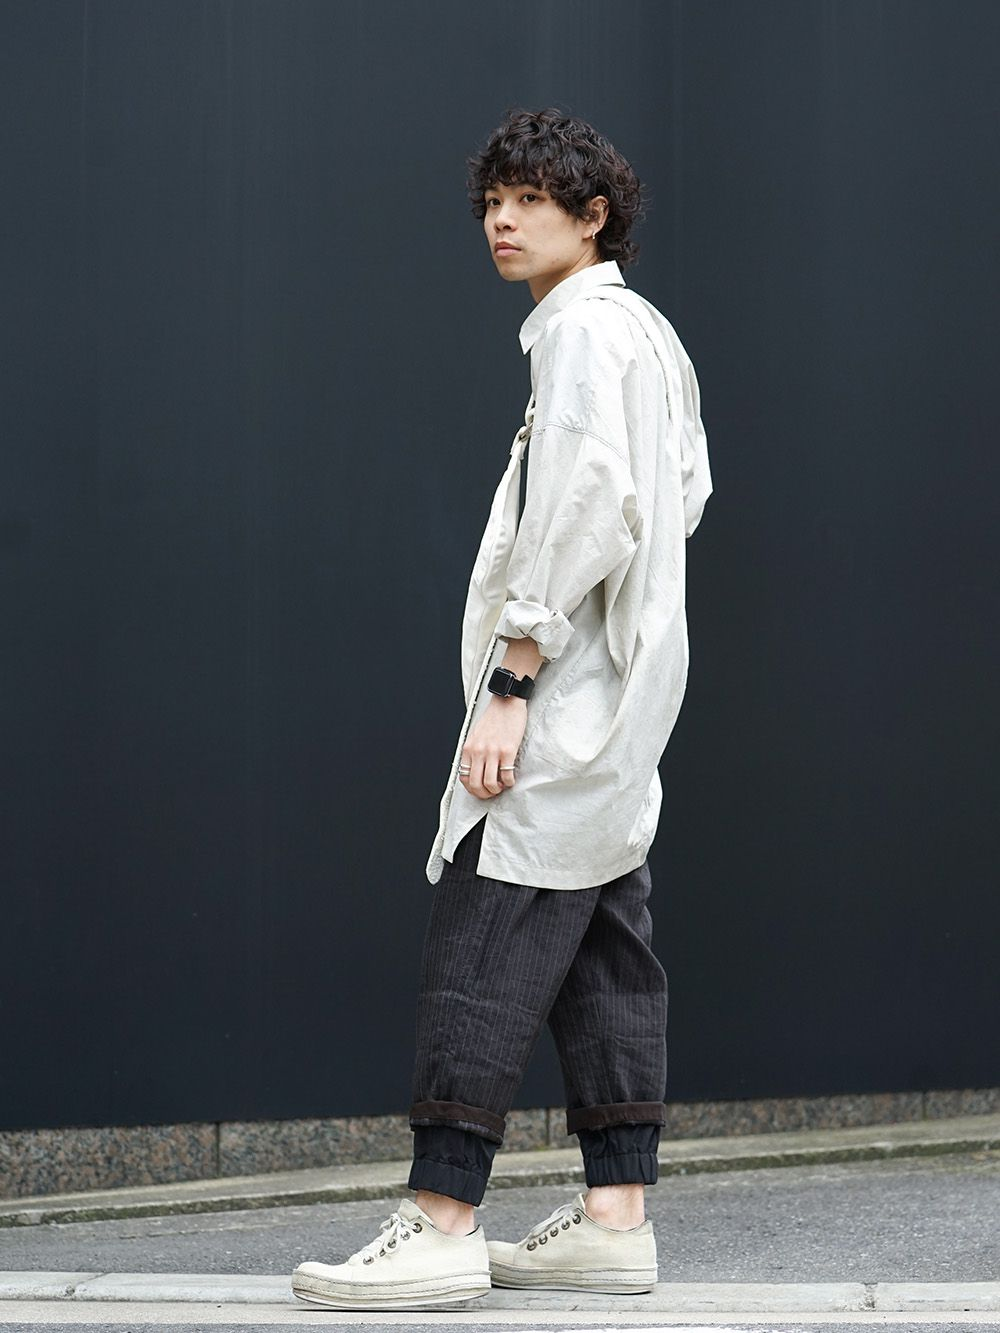 ZIGGY CHEN Relaxed Atmosphere Style - 1-003